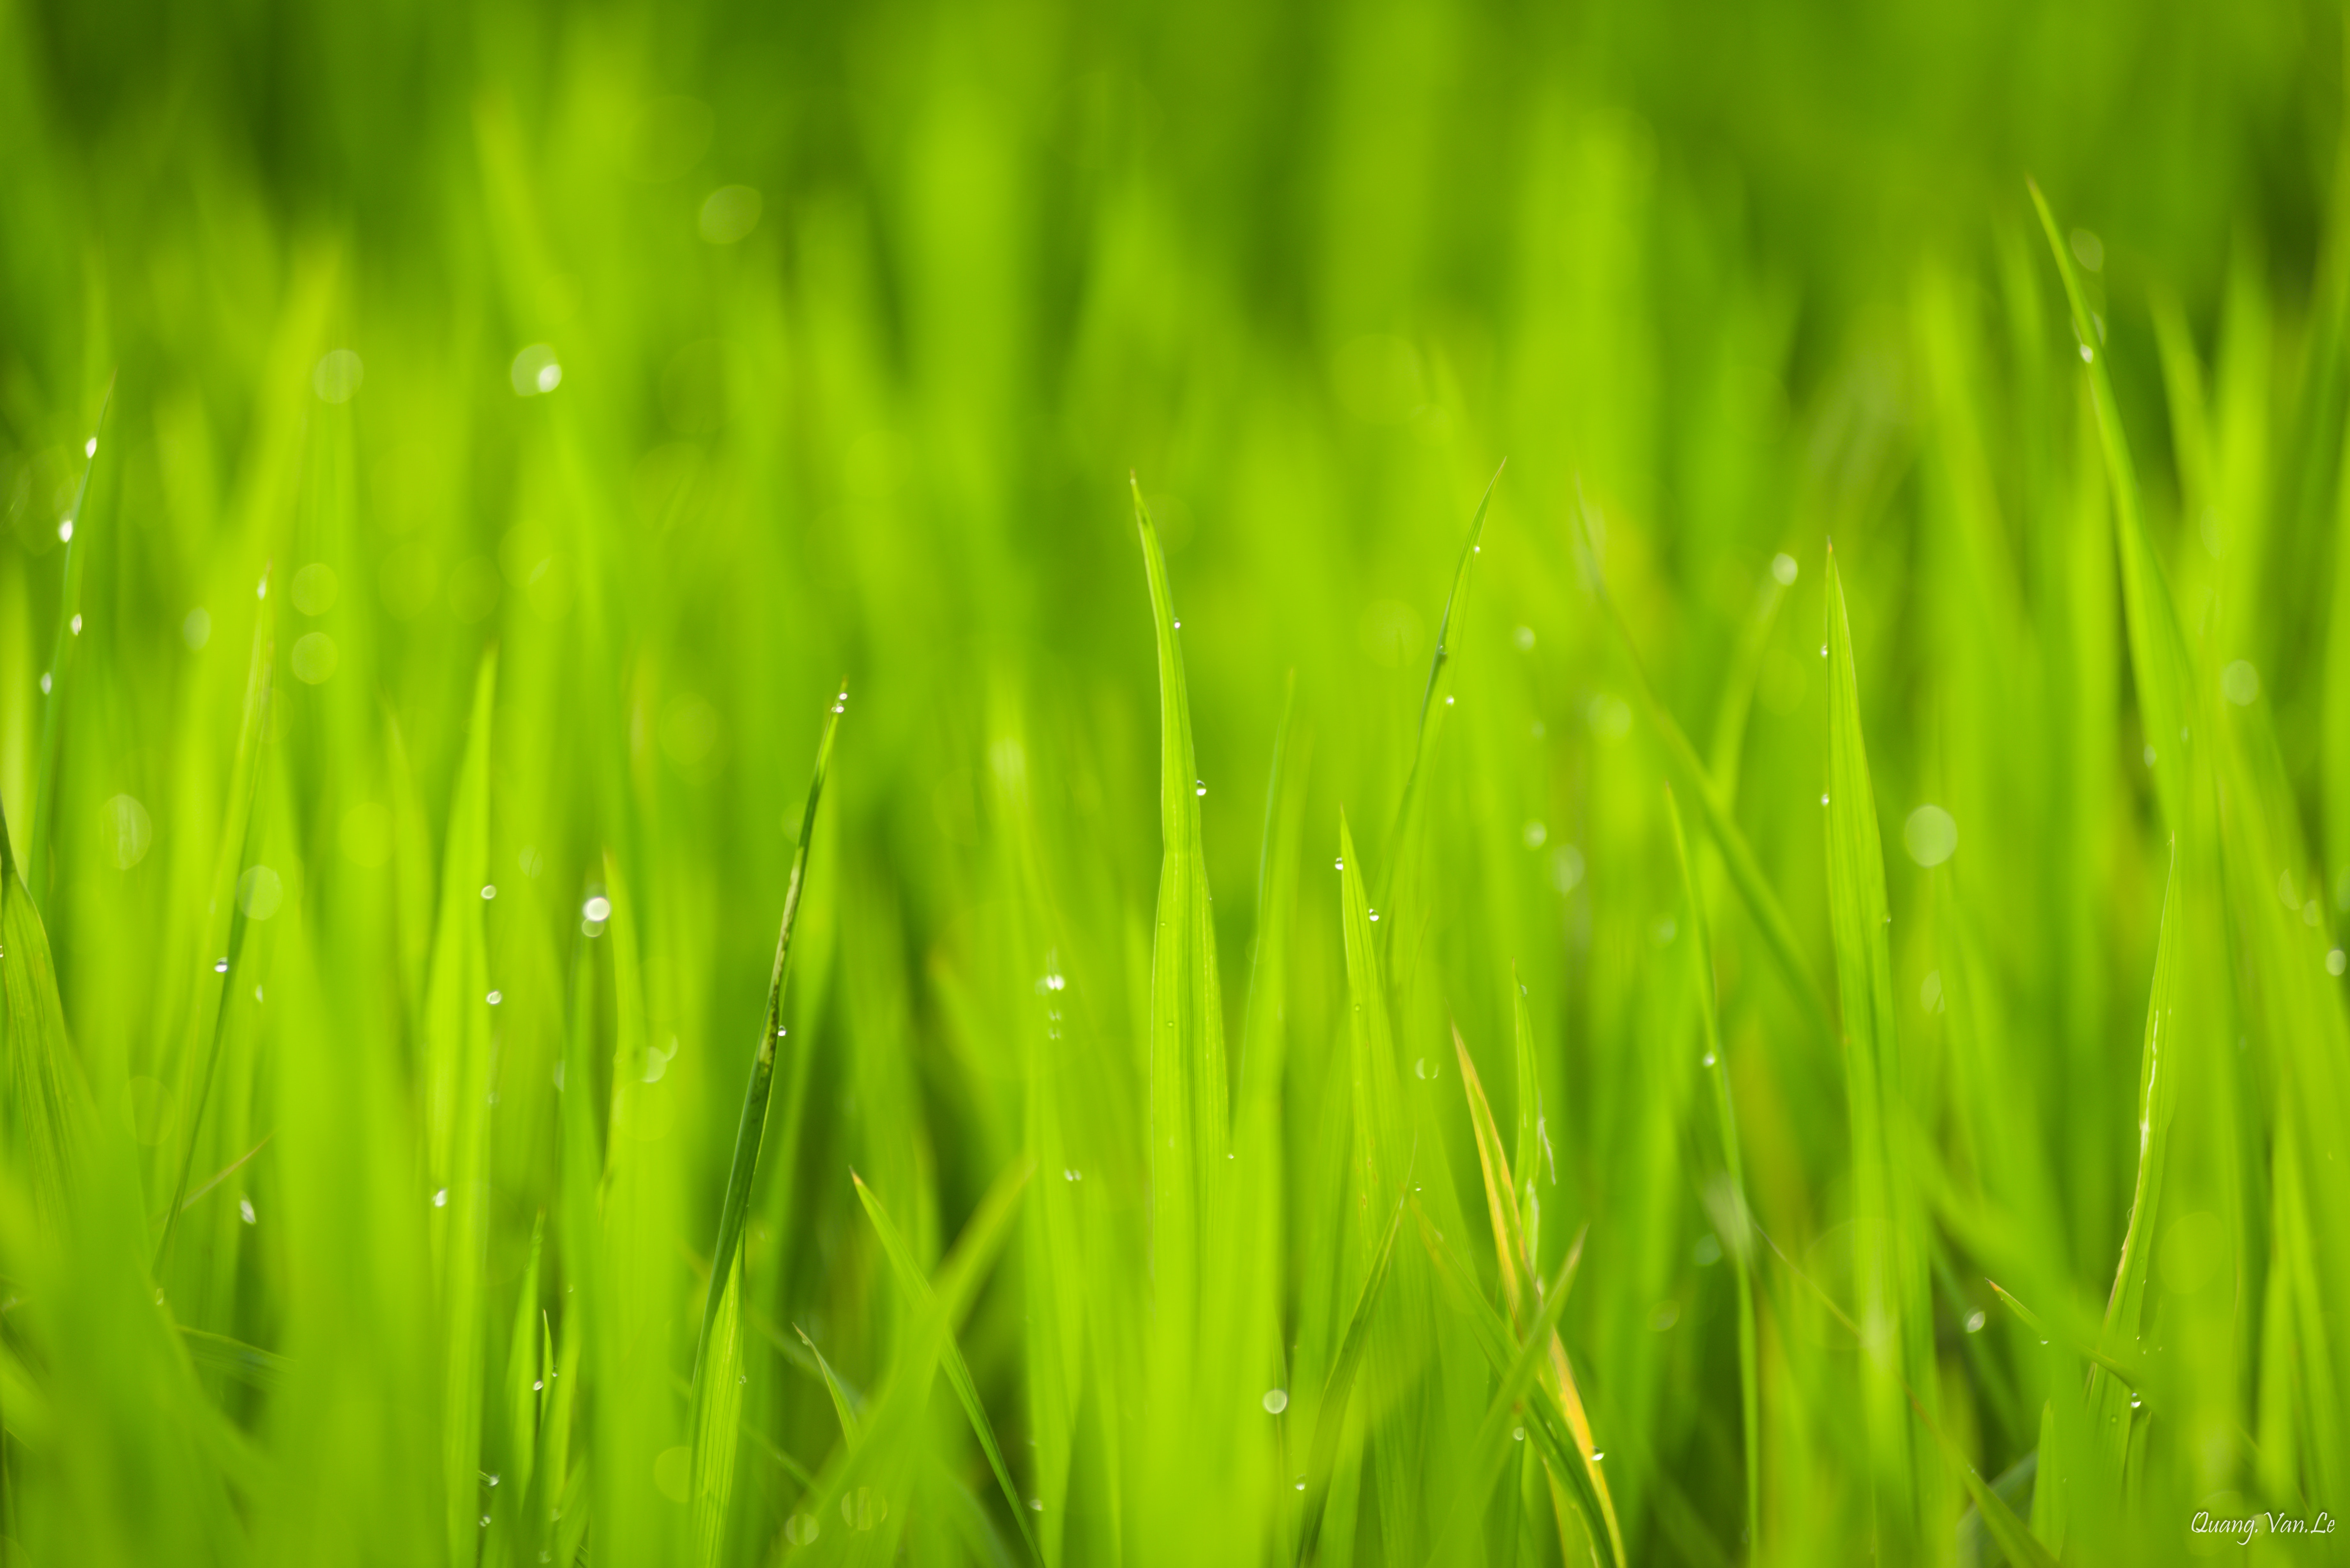 free photo close up photo of green grass under sunny sky during daytime dewdrops grass hd wallpaper free download jooinn jooinn